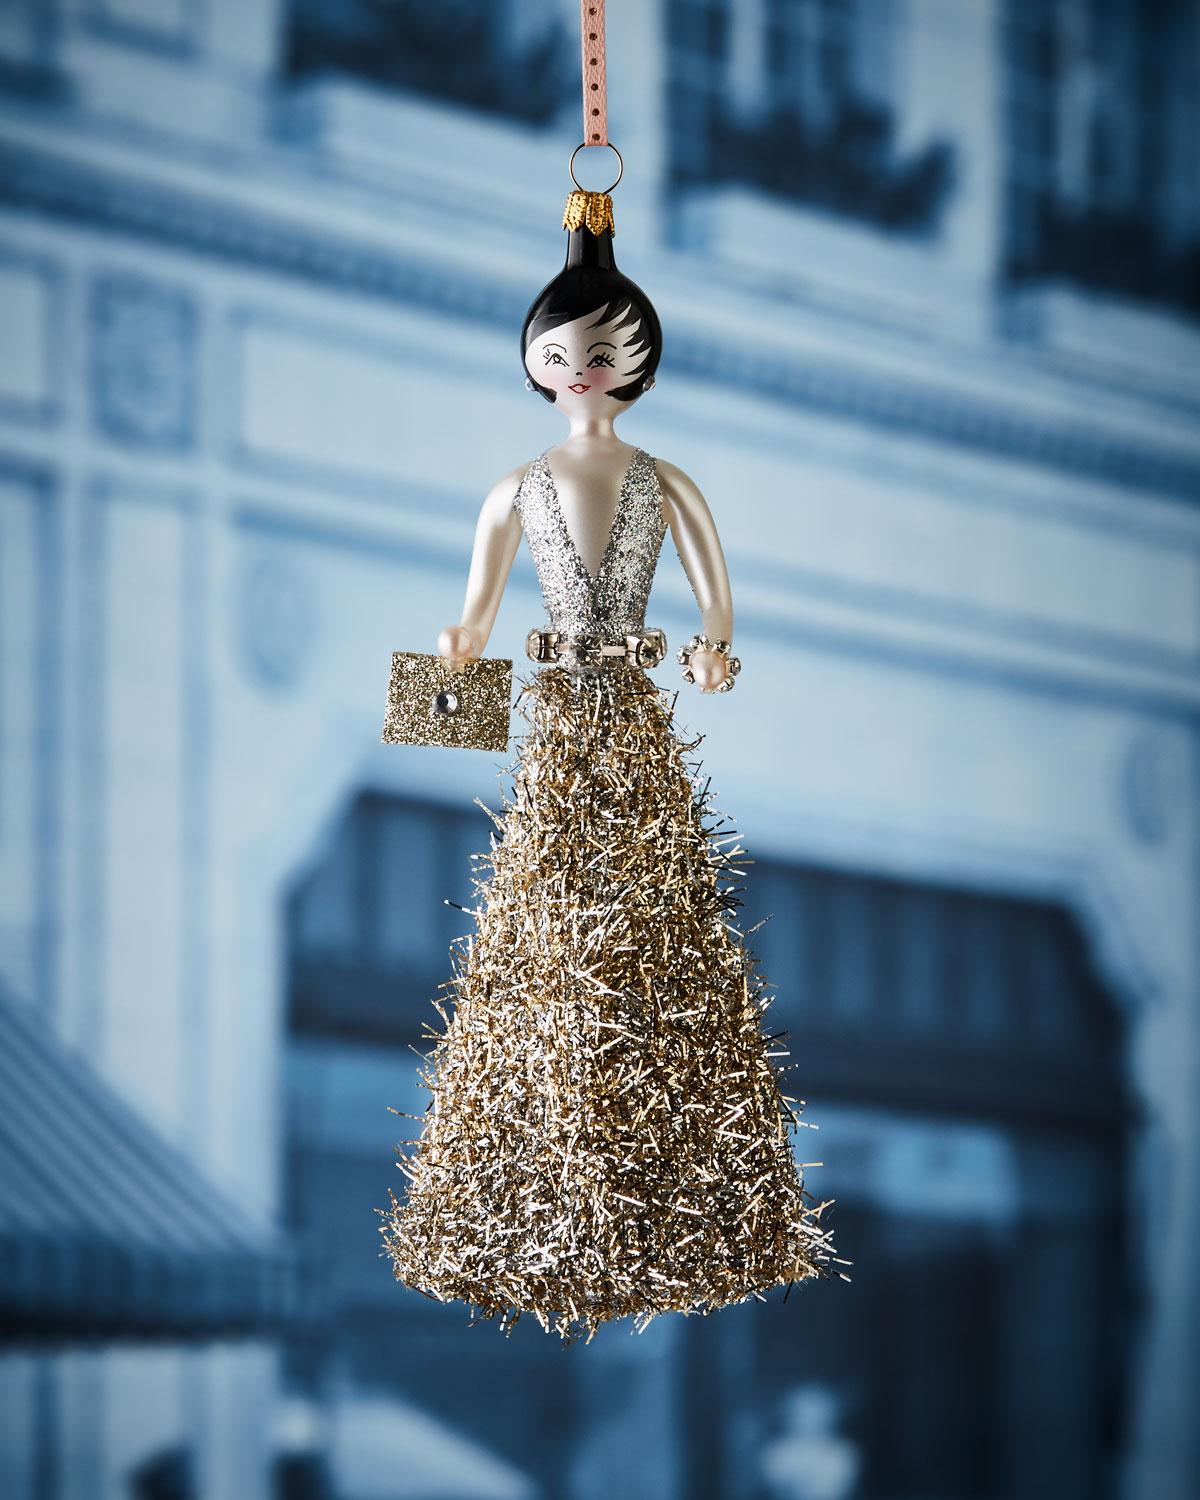 Christine in Gold & Silver Gown Christmas Ornament